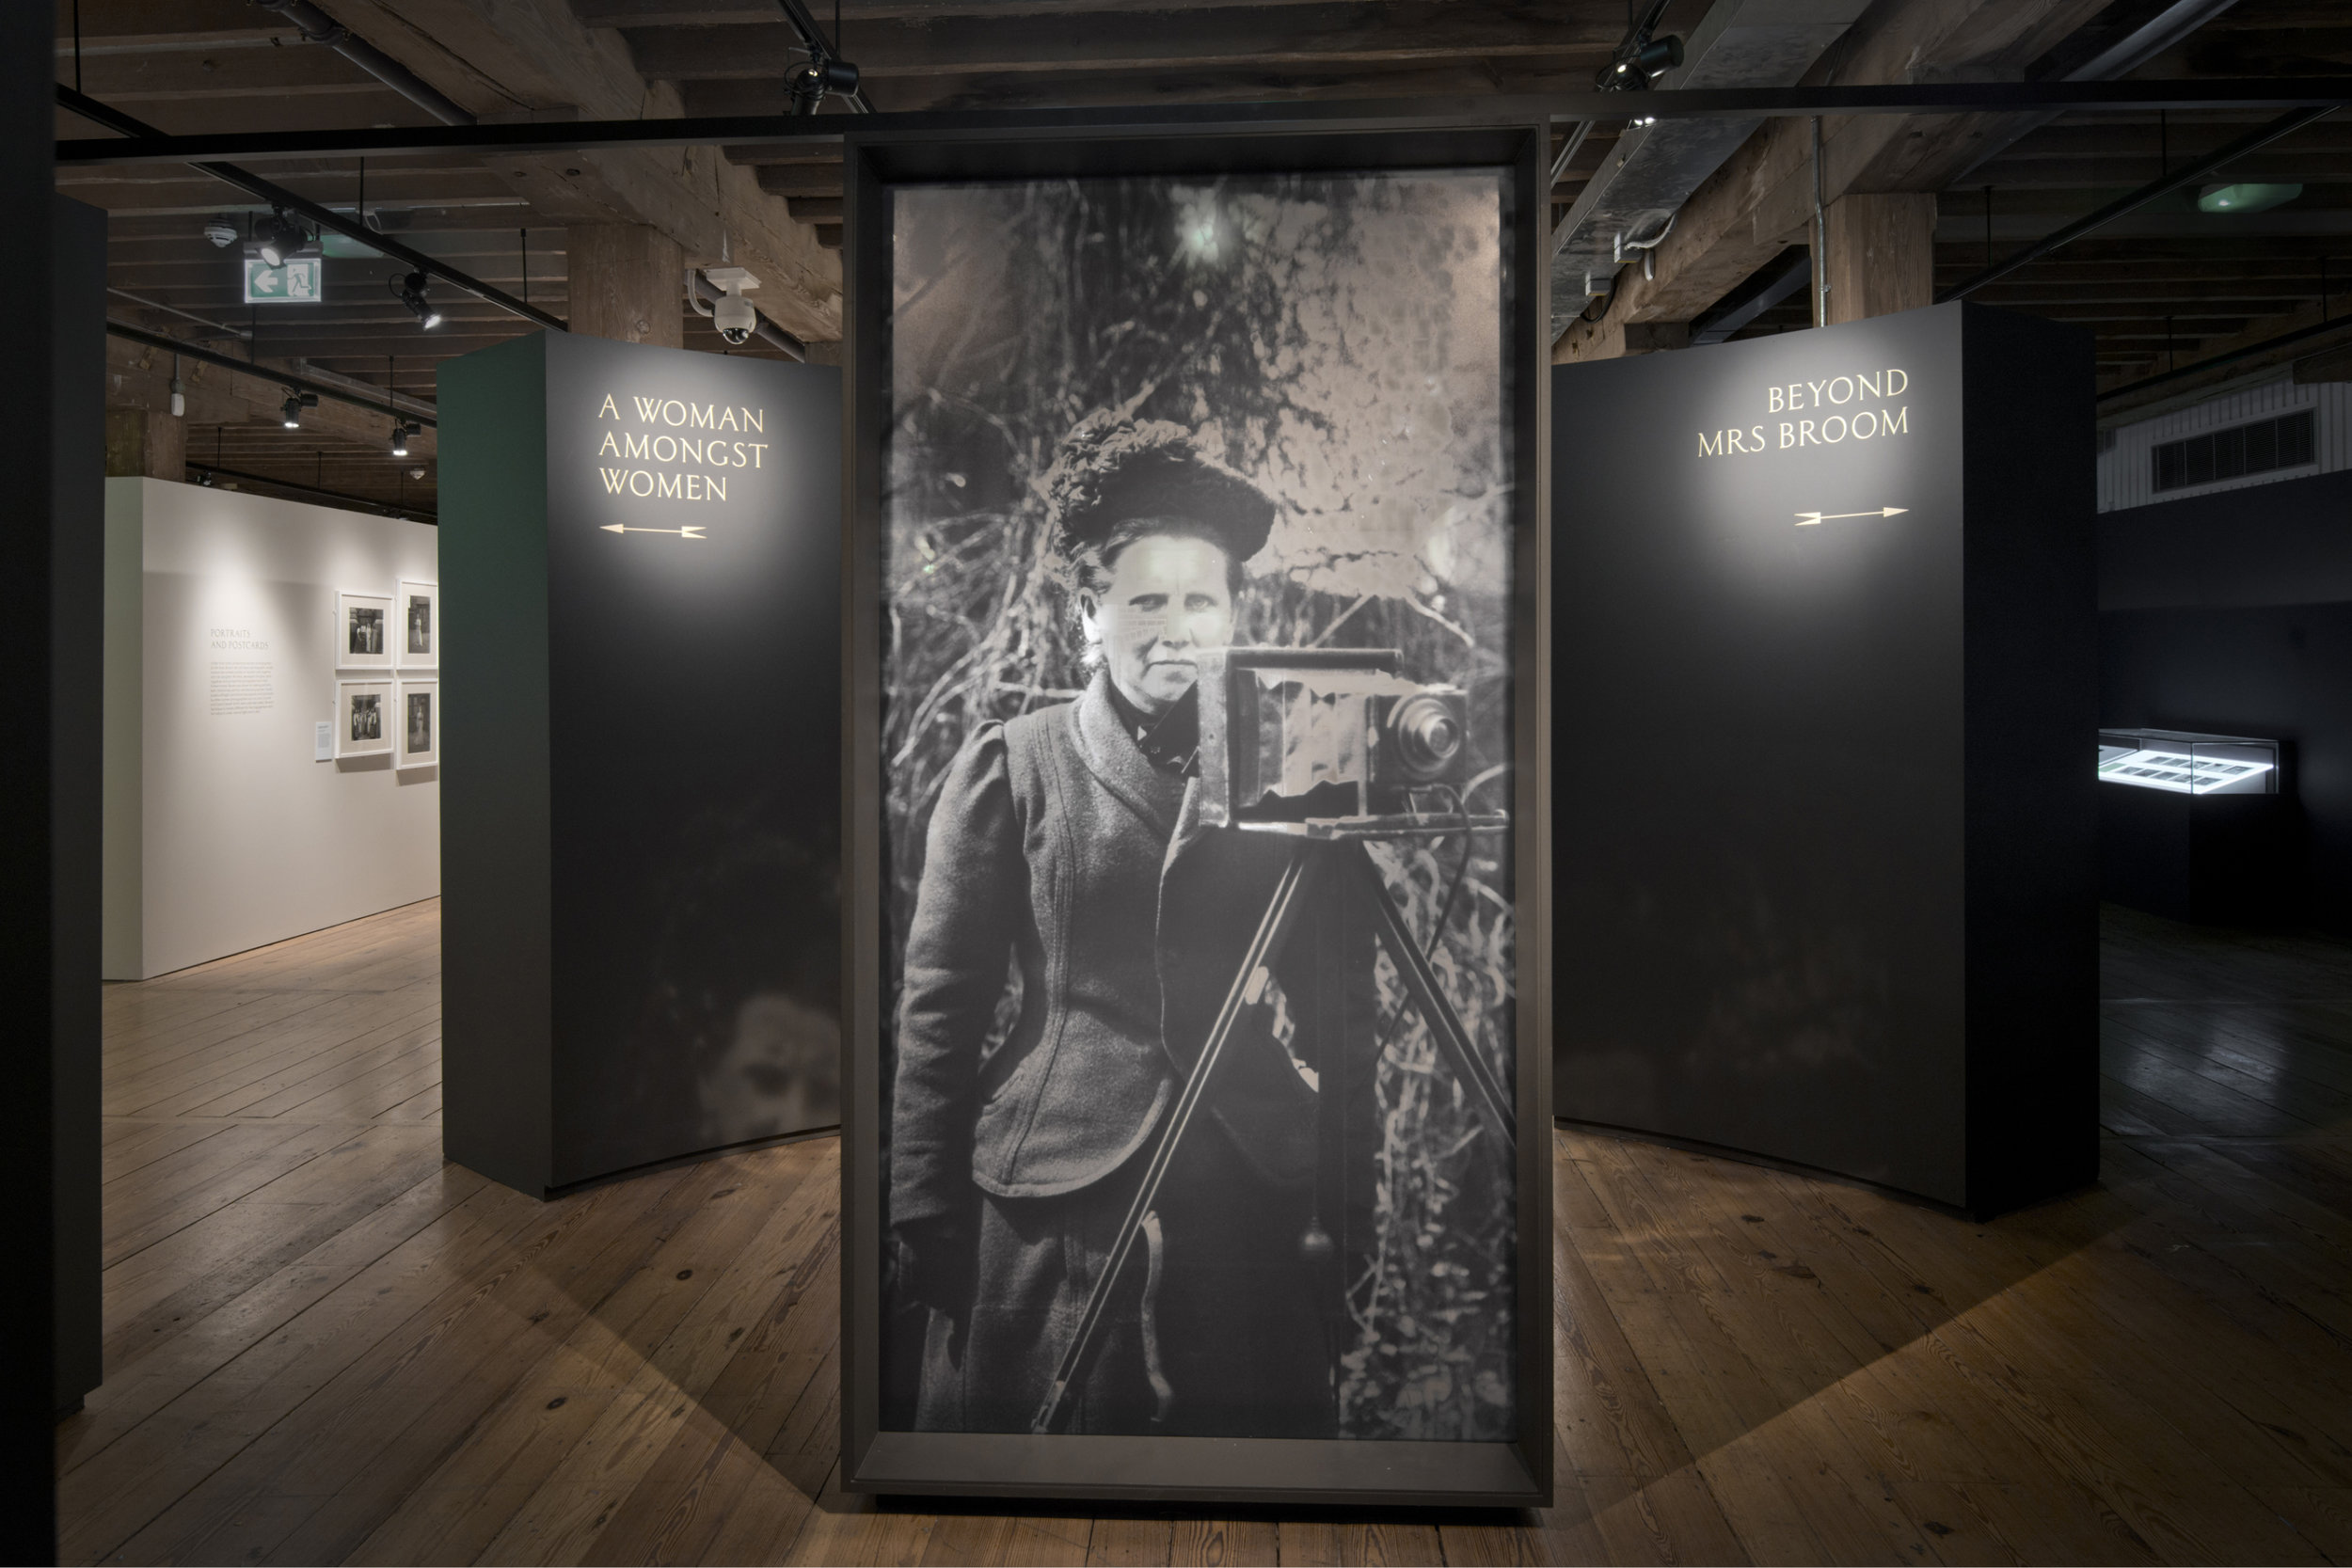 Photograph of Christina Broom Exhibition at Museum of London